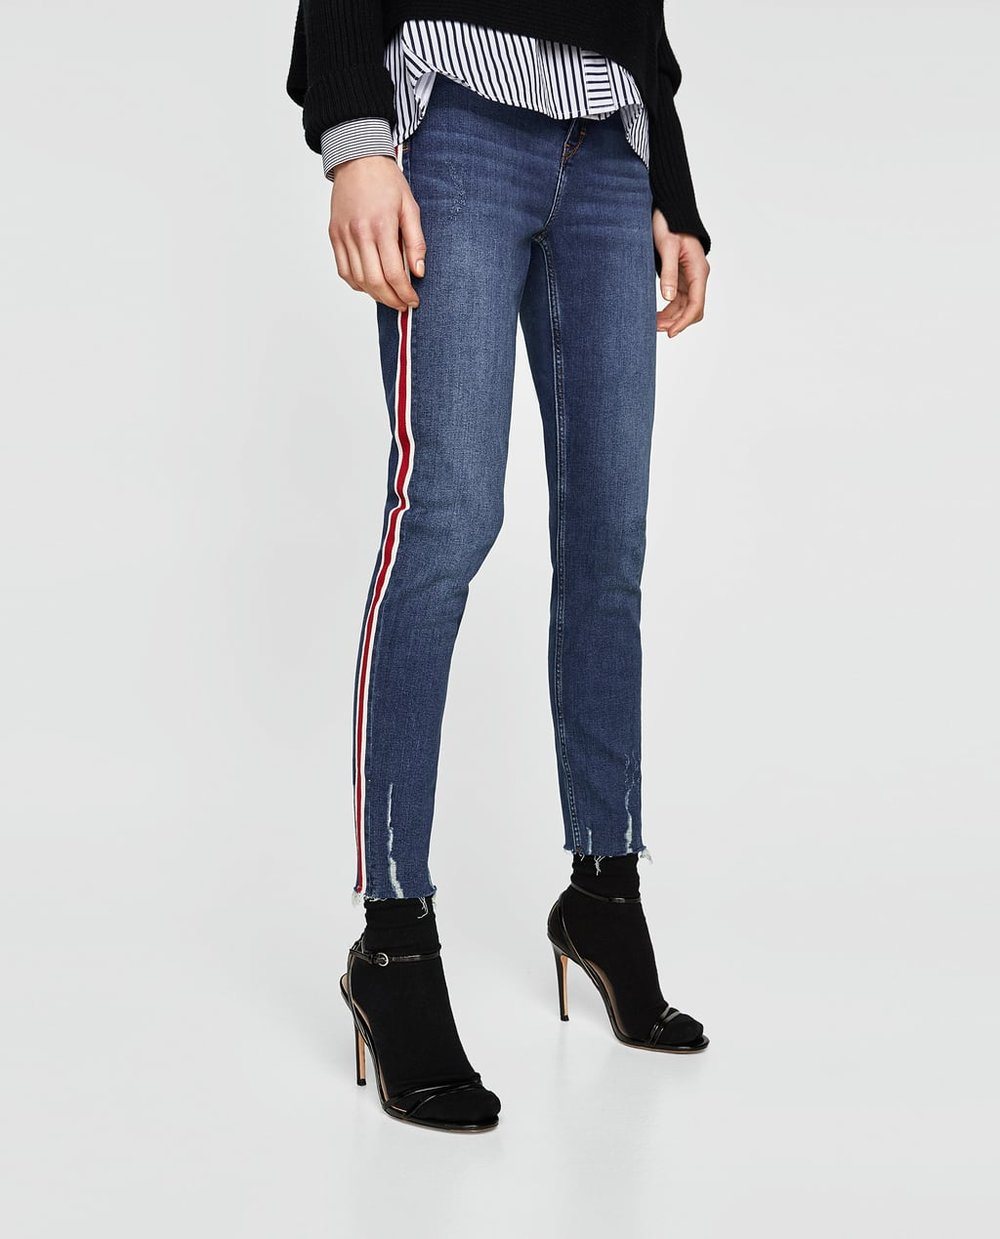 Jeans With Side Stripe, Zara, £25.99